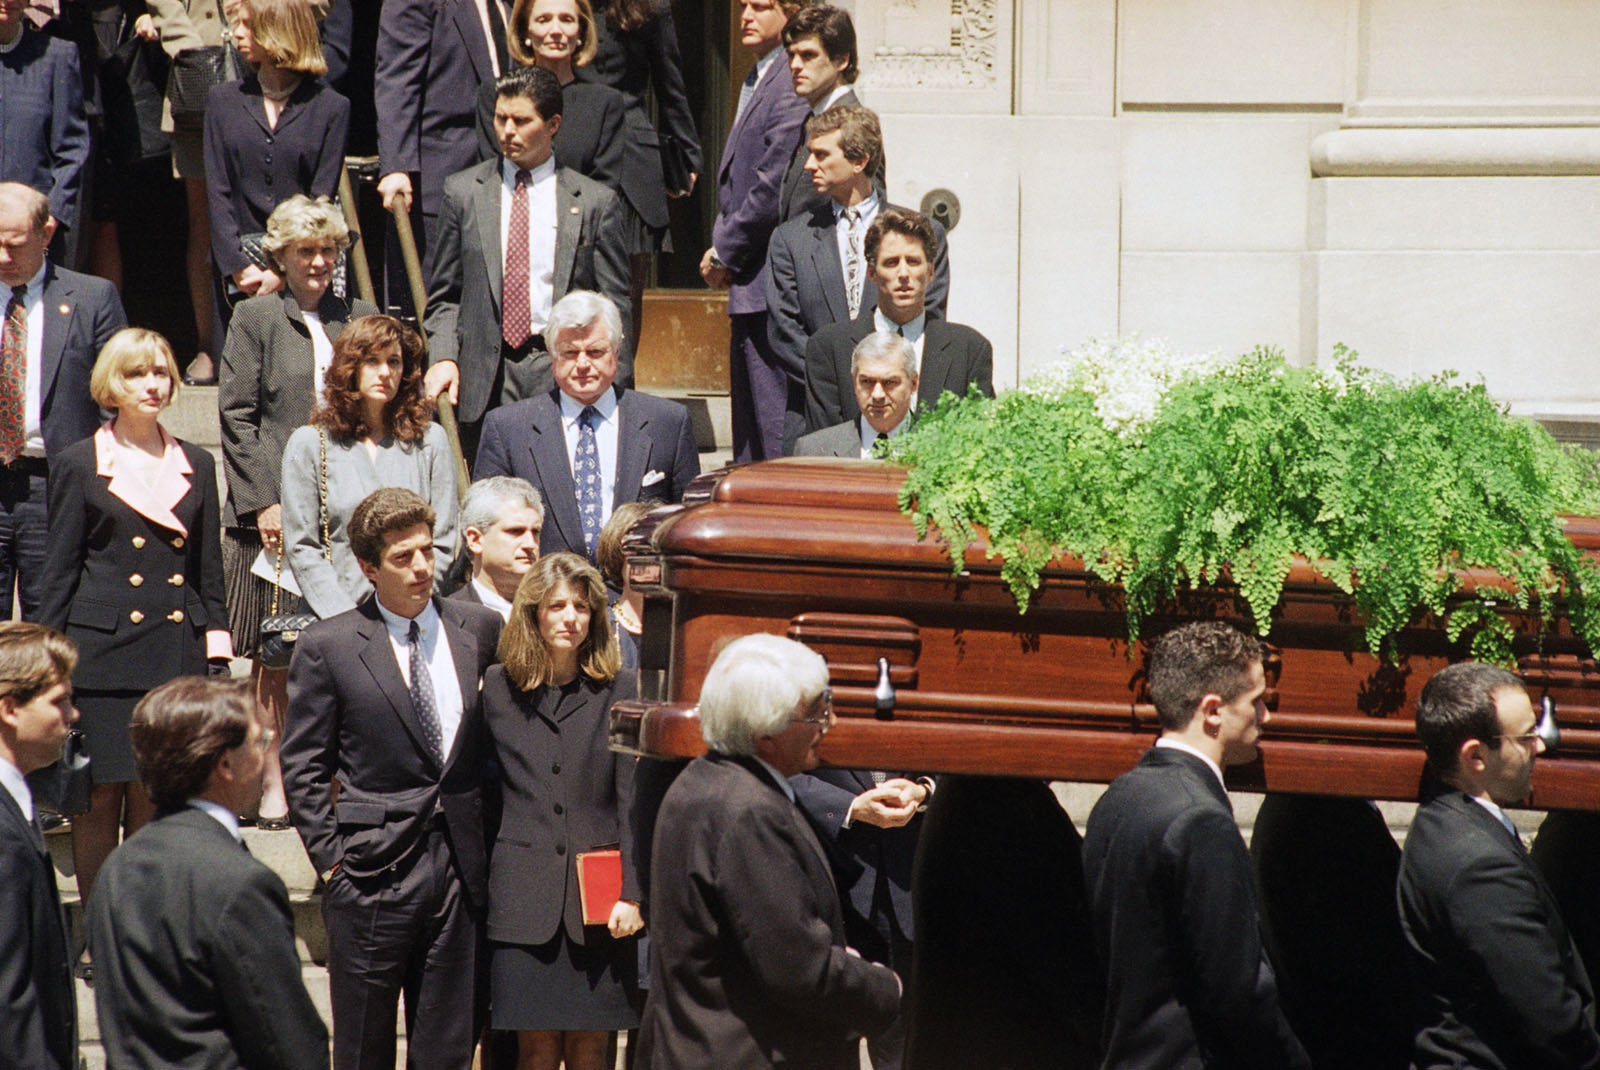 The casket bearing the remains of Jacqueline Kennedy Onassis is carried out of St. Ignatius Loyola Roman Catholic Church in New York following a funeral mass  Monday, May 23, 1994. Following immediately behind the pallbearers are John F. Kennedy Jr., with an arm around his sister, Caroline Kennedy Schlossberg; Caroline's husband, Edwin Schlossberg, is visible between them. Hillary Rodham Clinton, left; Sen. Edward M. Kennedy (D-Mass.) and his wife, Victoria Reggie, center; and at right, third from bottom, Robert F. Kennedy Jr. (AP Photo/Elise Amendola)